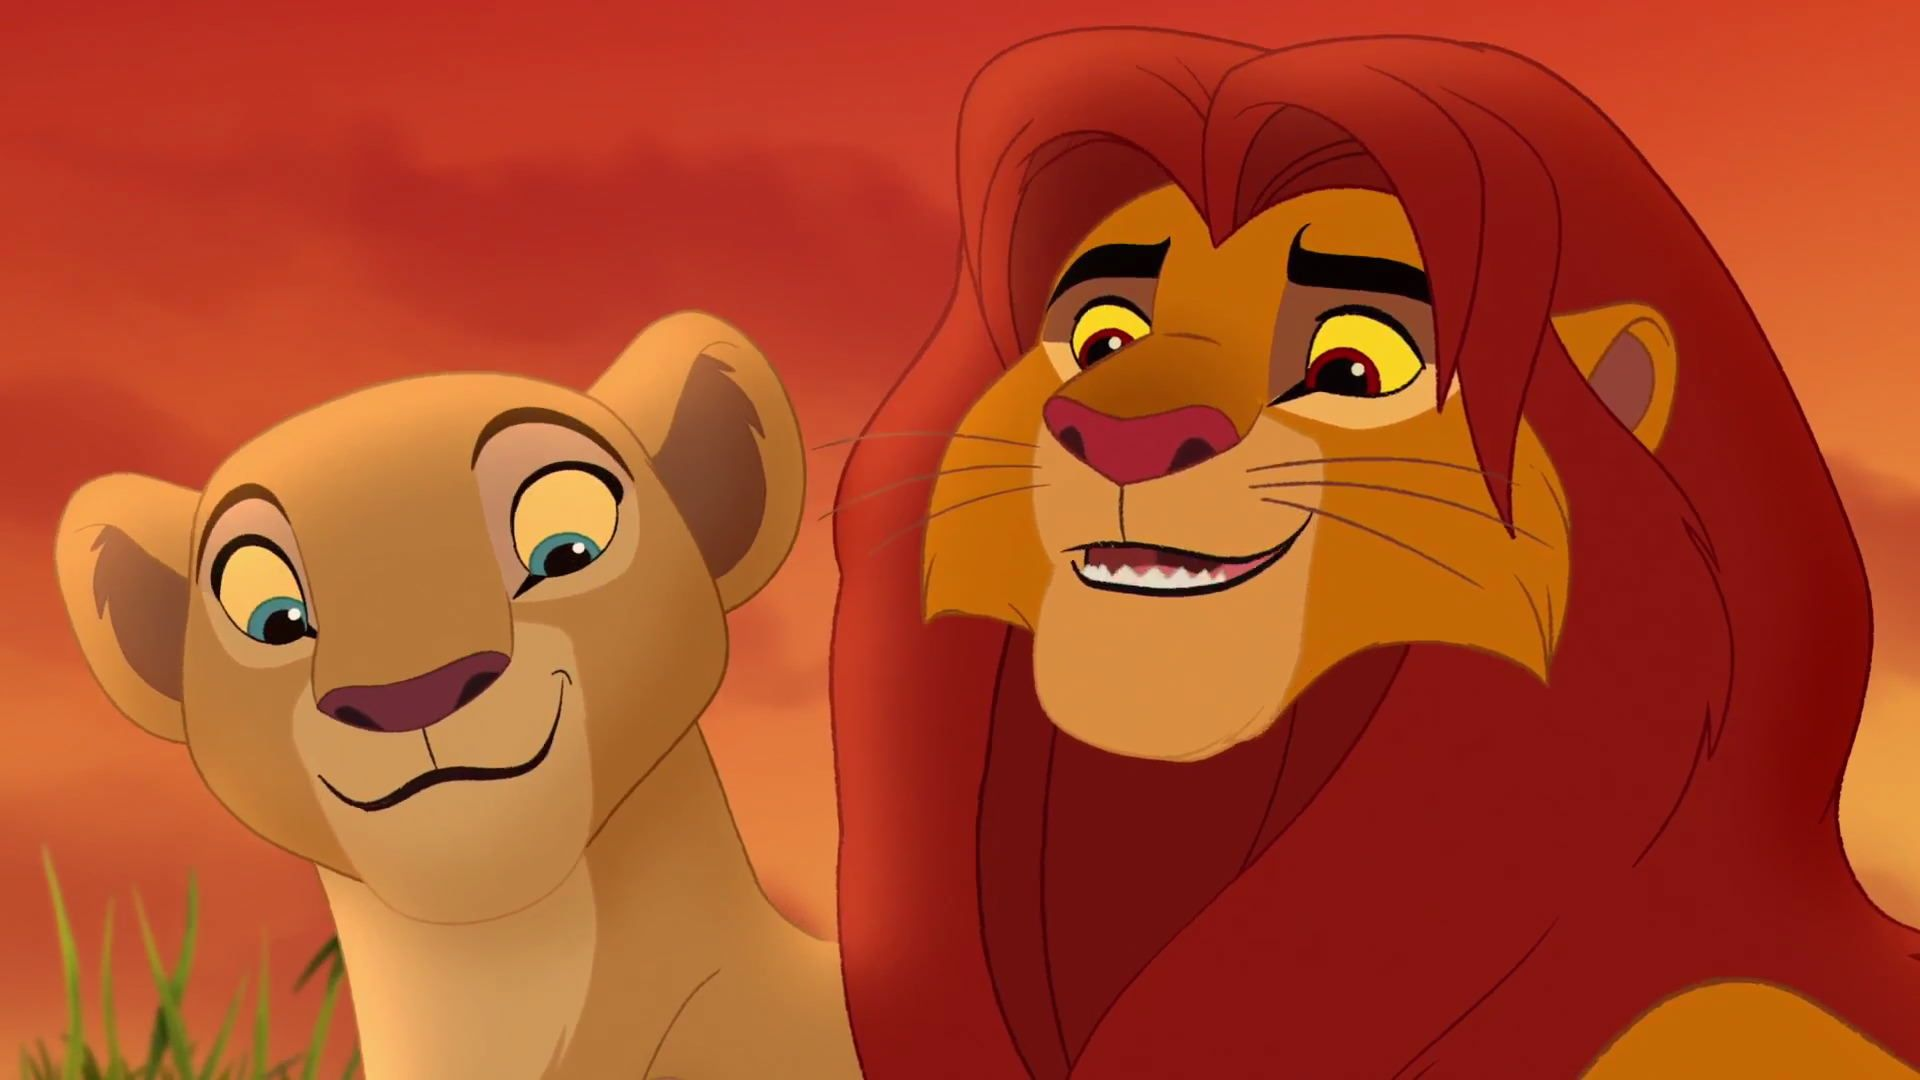 nala and simba meet again someday